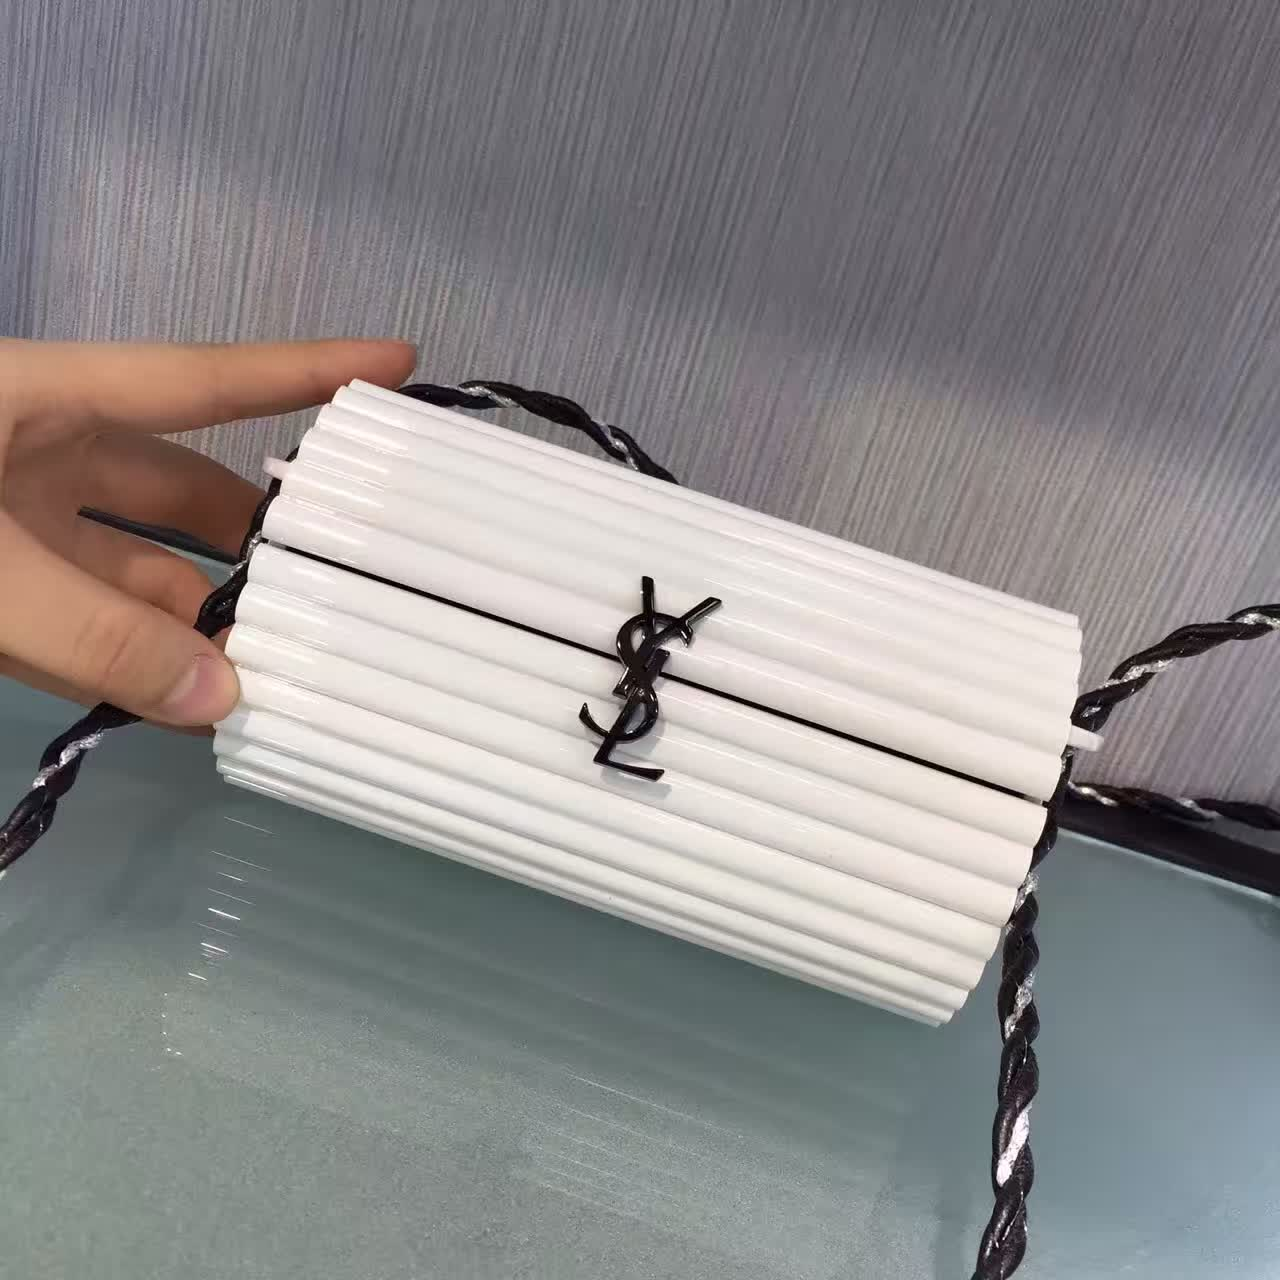 Limited Edition!2016 Cheap YSL Out Sale with Free Shipping-Saint Laurent Opium Minaudiere Bag in White Plexiglas and Black Leather